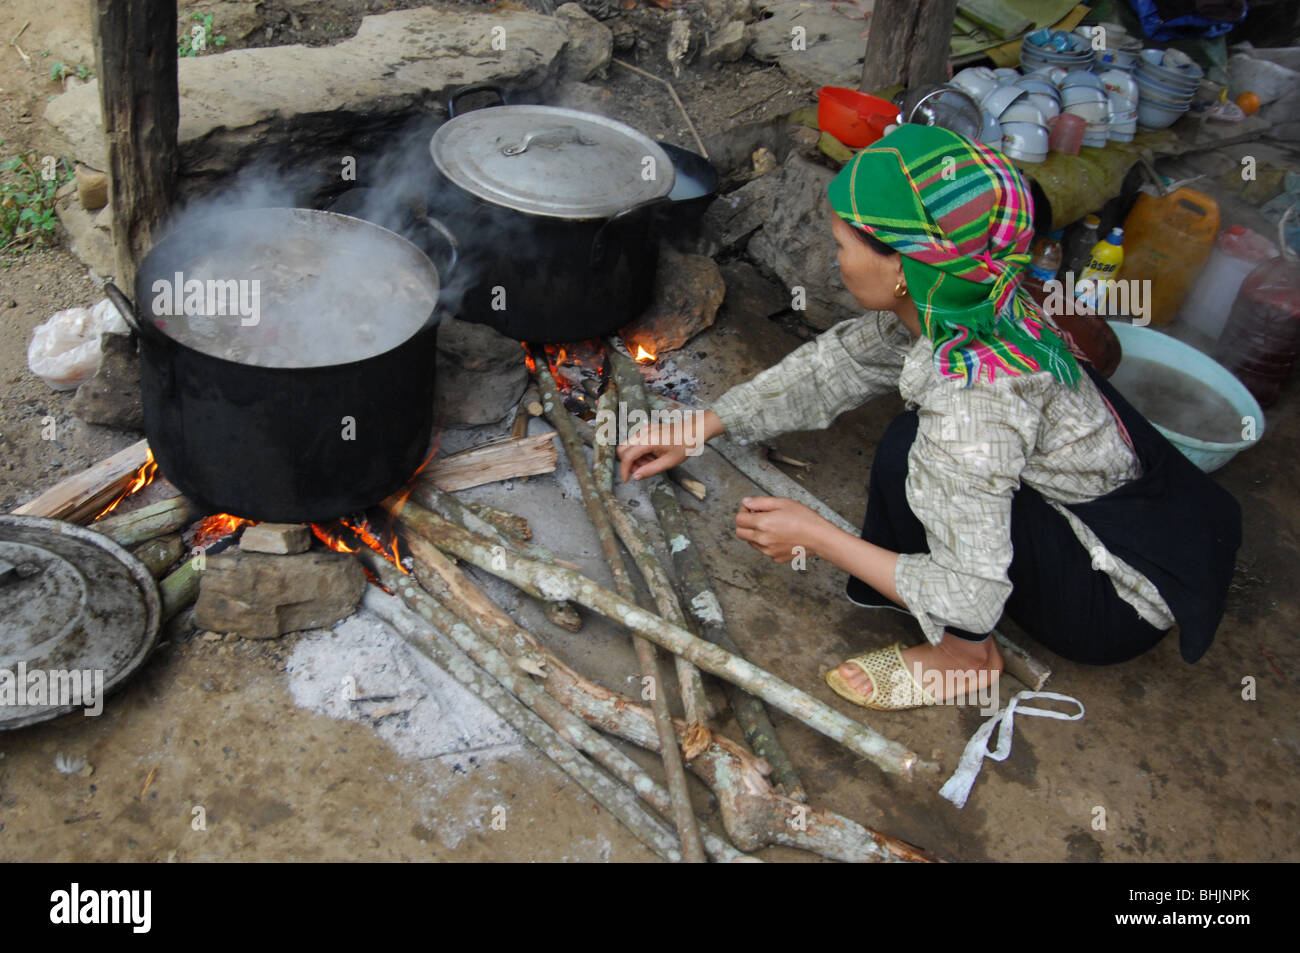 Flower Hmong Hill Tribe lady cooking a stew, tuesday market , Coc Ly, Lao Cai Province,  north west vietnam - Stock Image